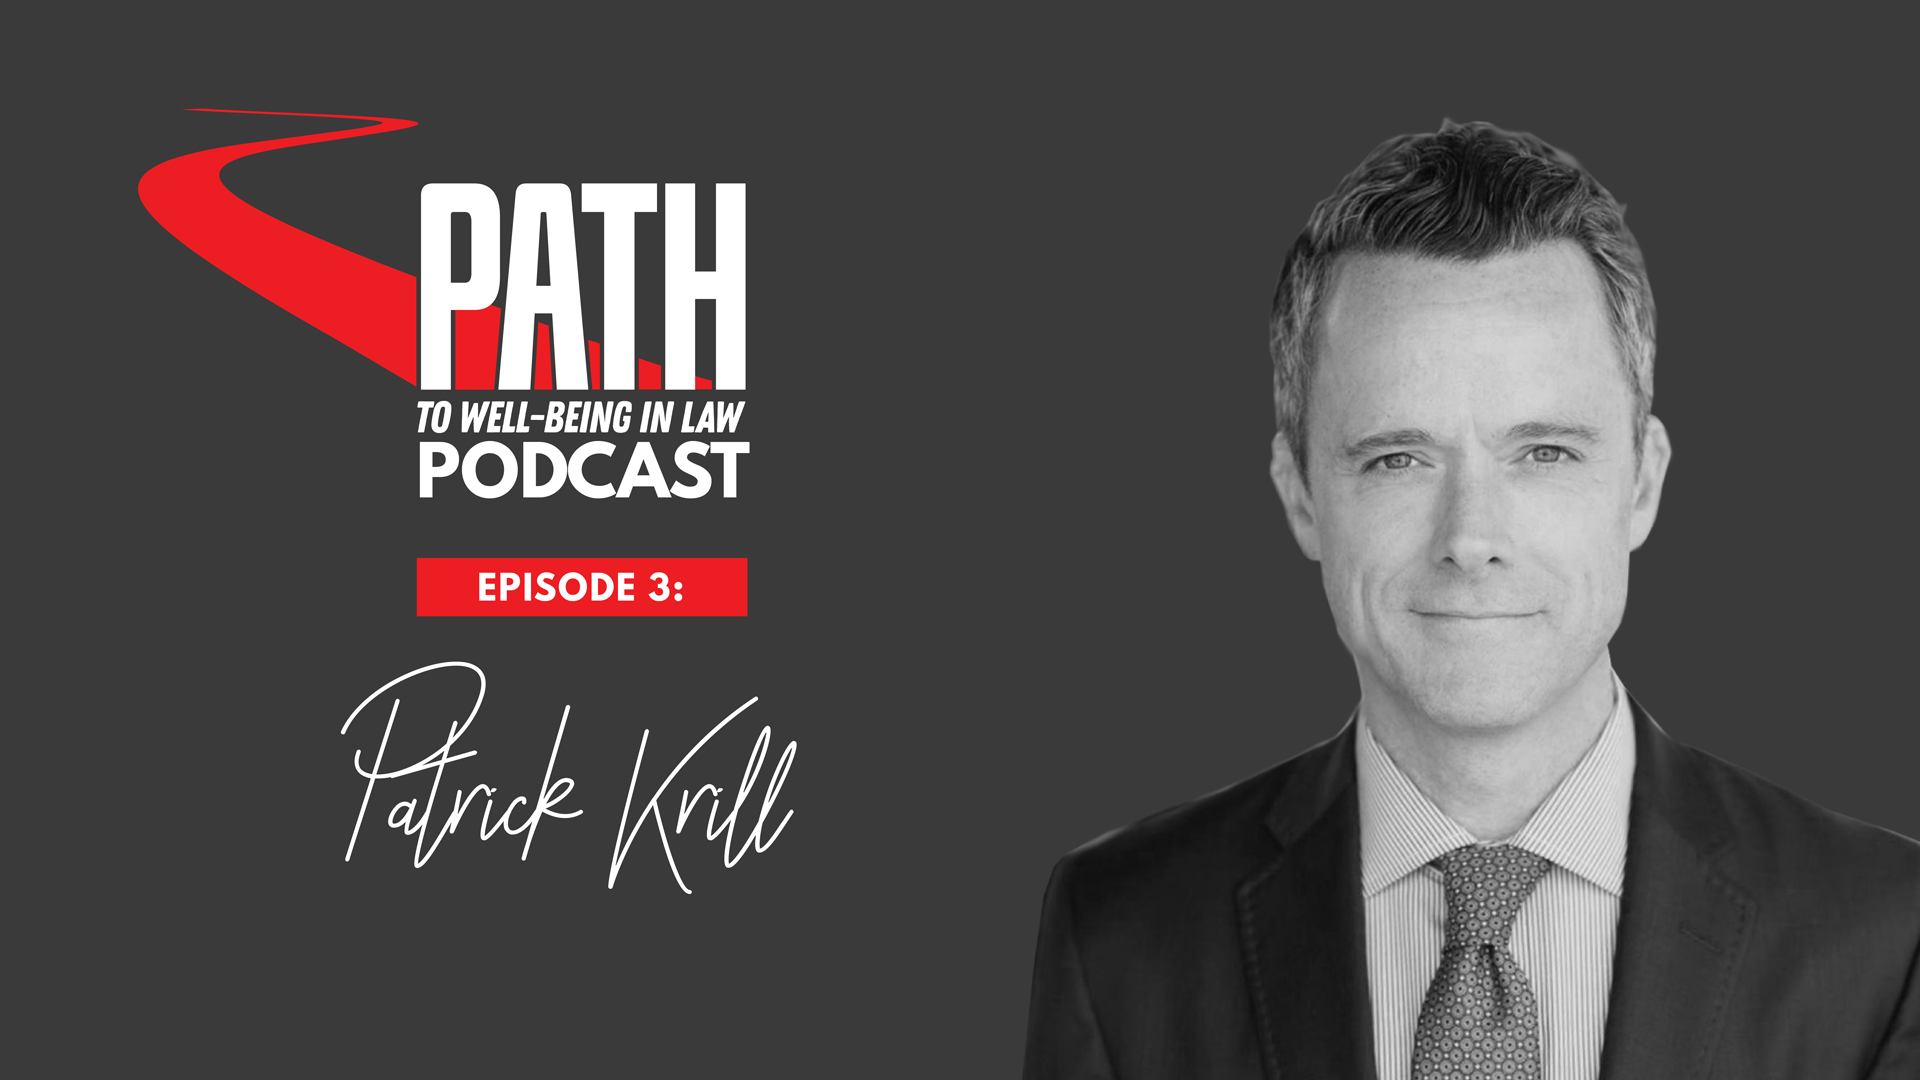 Patrick Krill on the path to wellbeing in law podcast